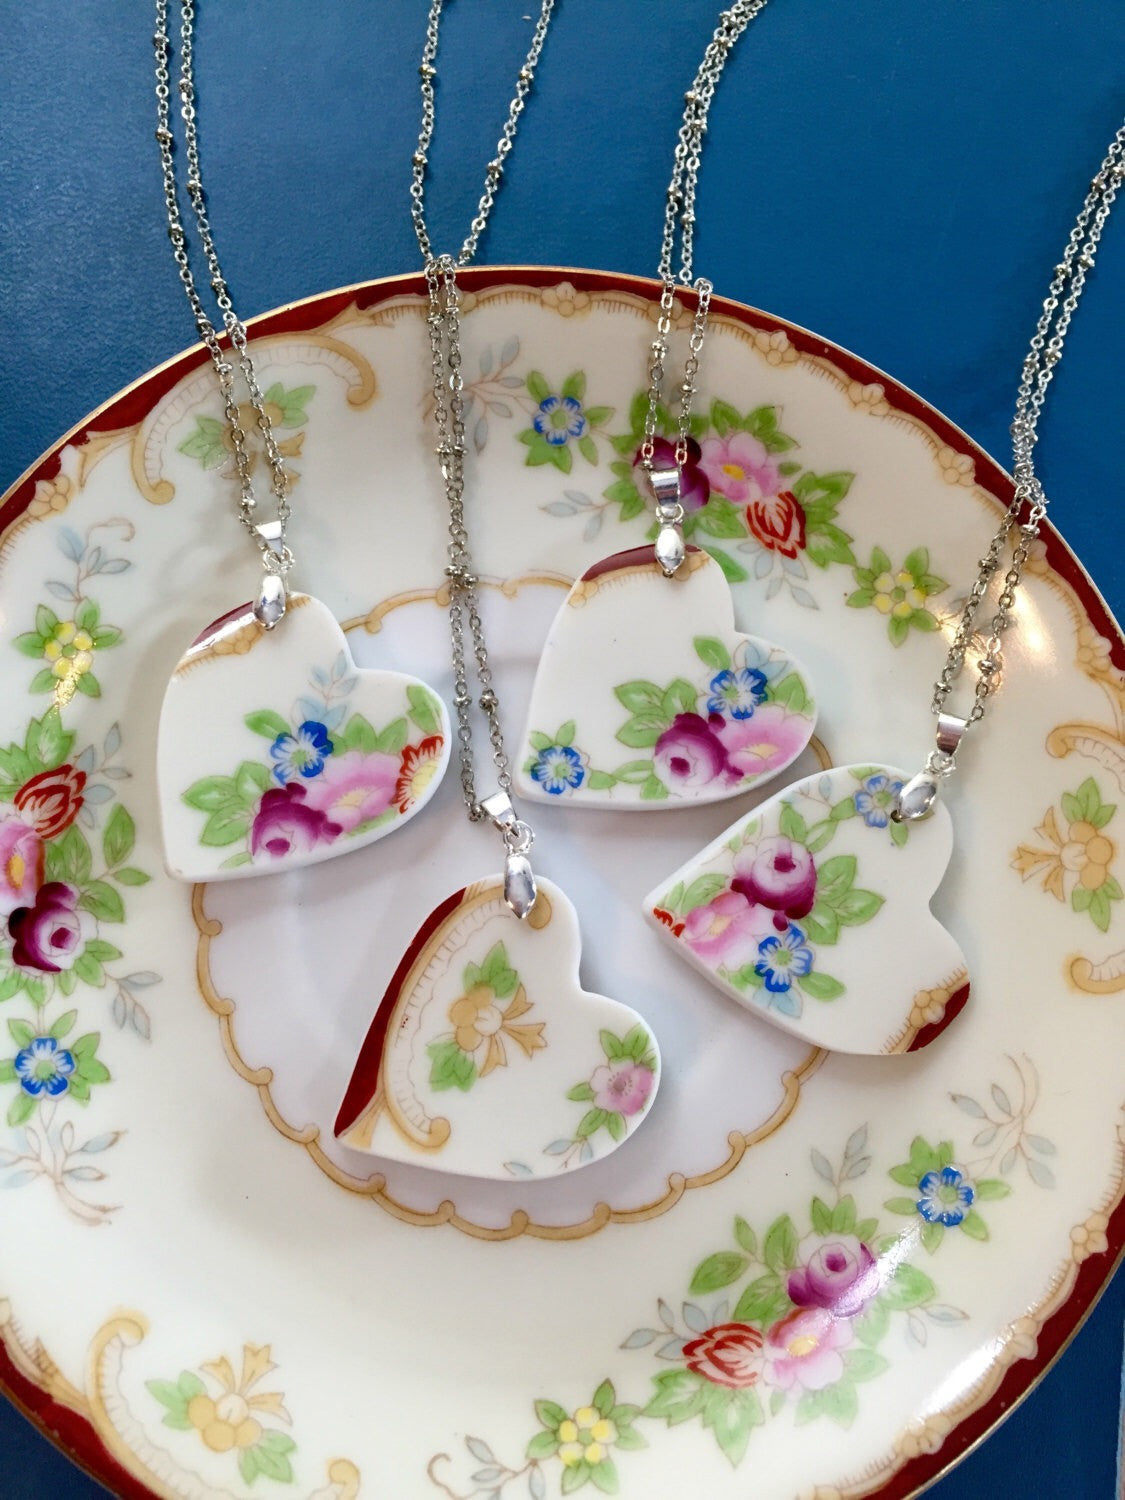 Broken china jewelry - Heart Bridal Necklace Set Main image